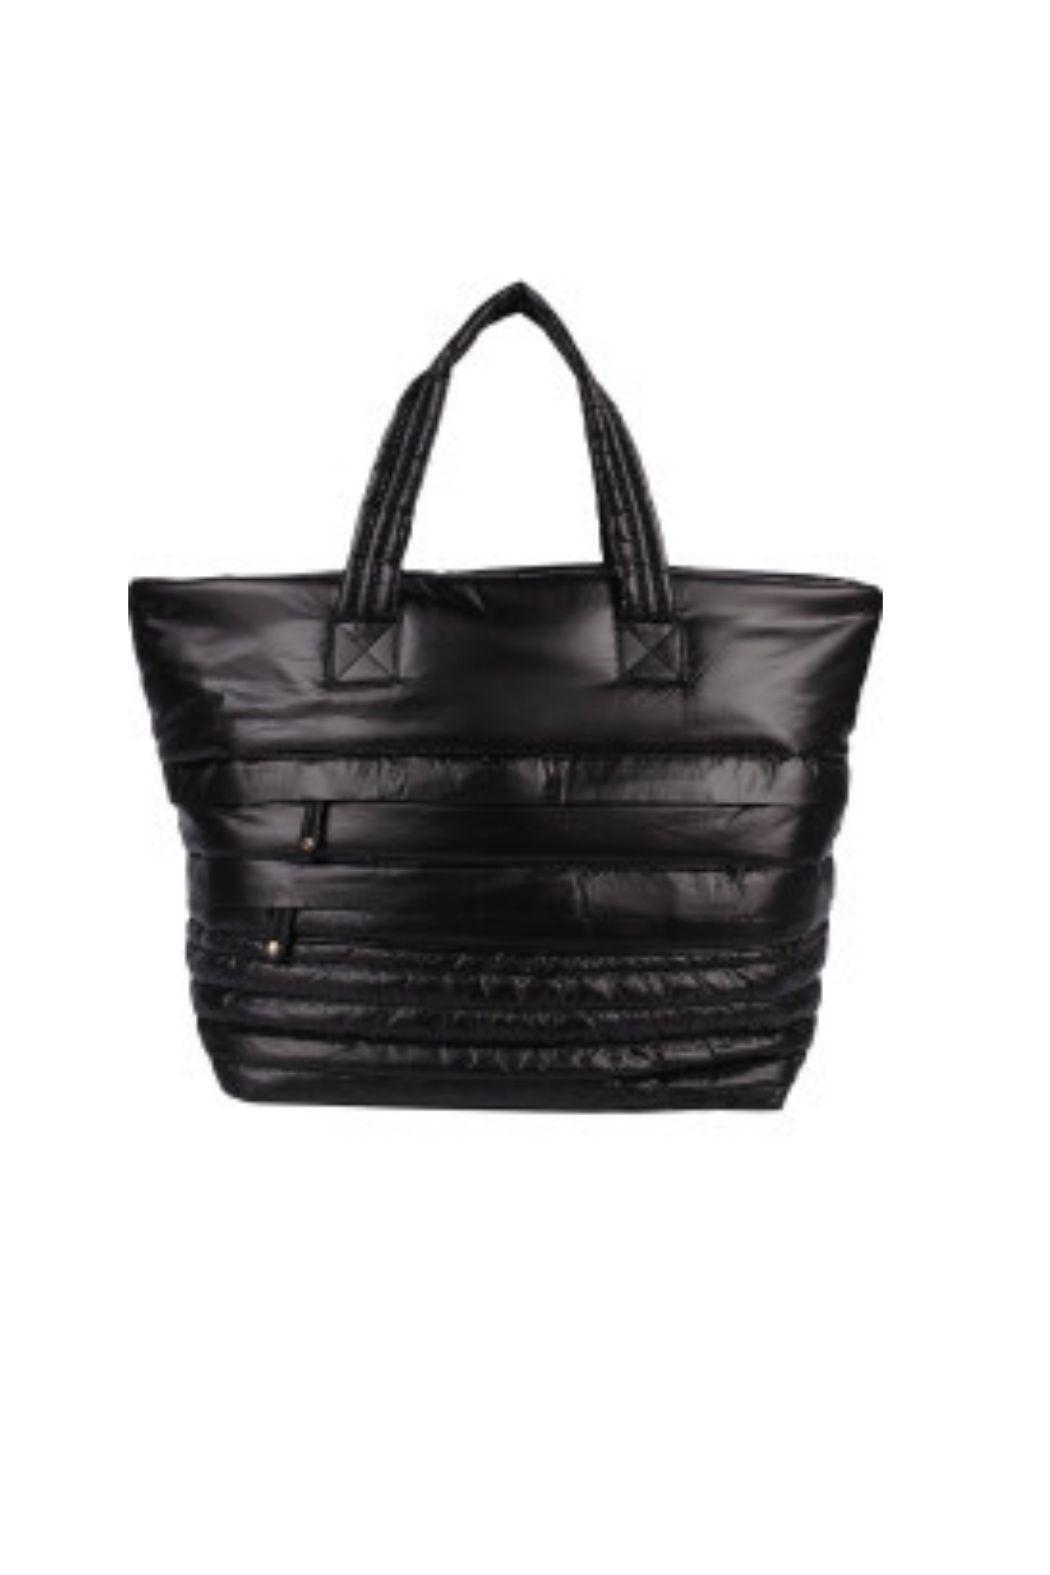 SR2 by Sondra Roberts Puffer Tote from New York by Let's ...